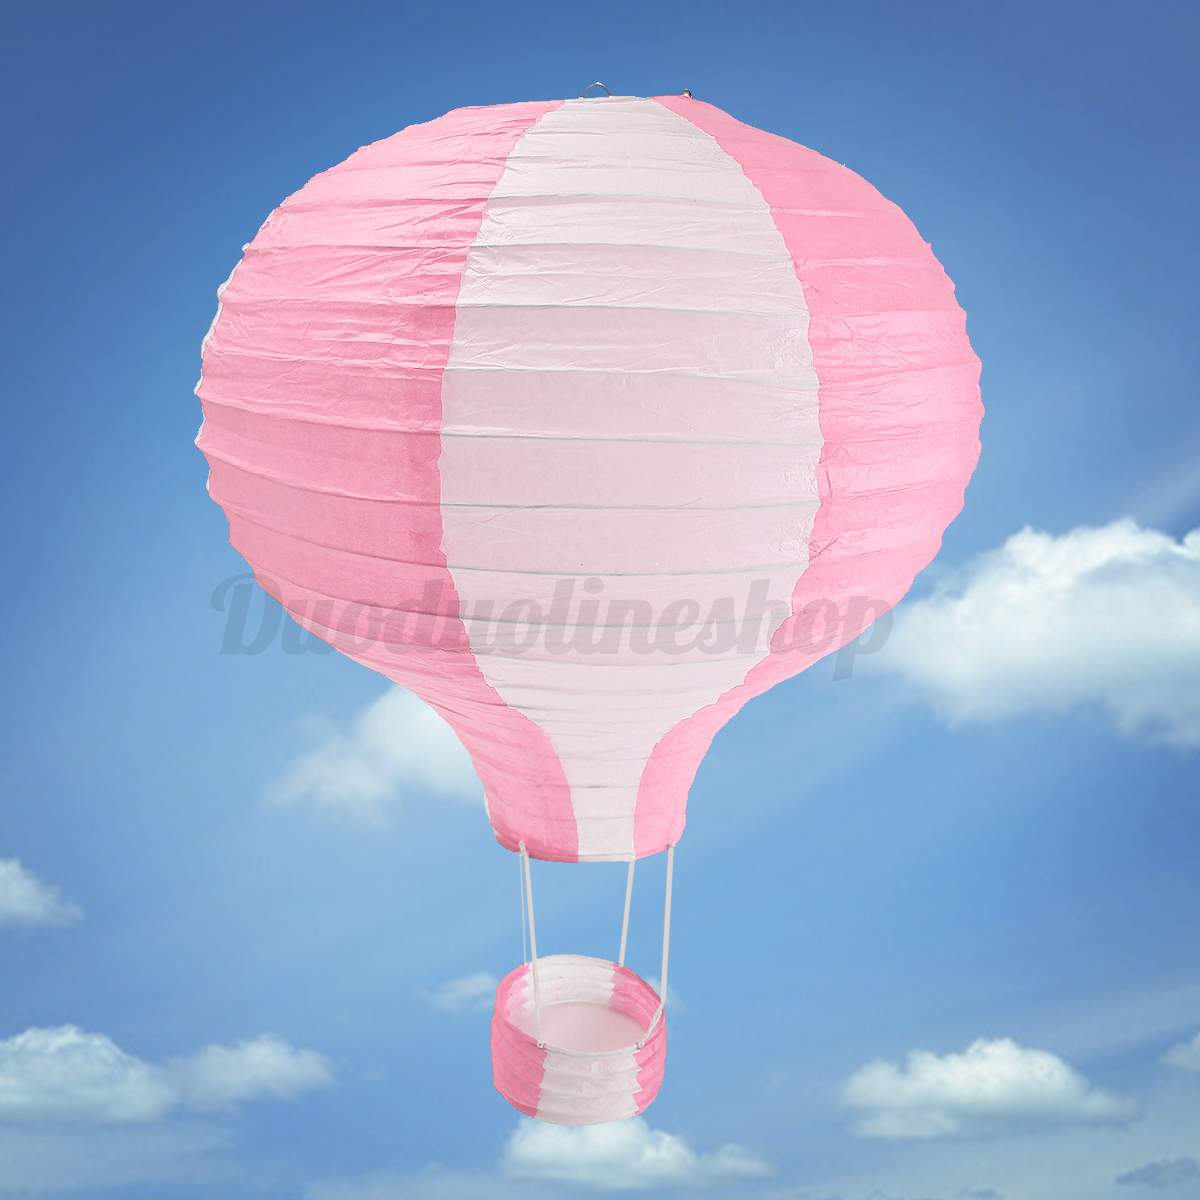 12'' Hot Air Balloon Paper Lantern Lampshade Ceiling Light ...